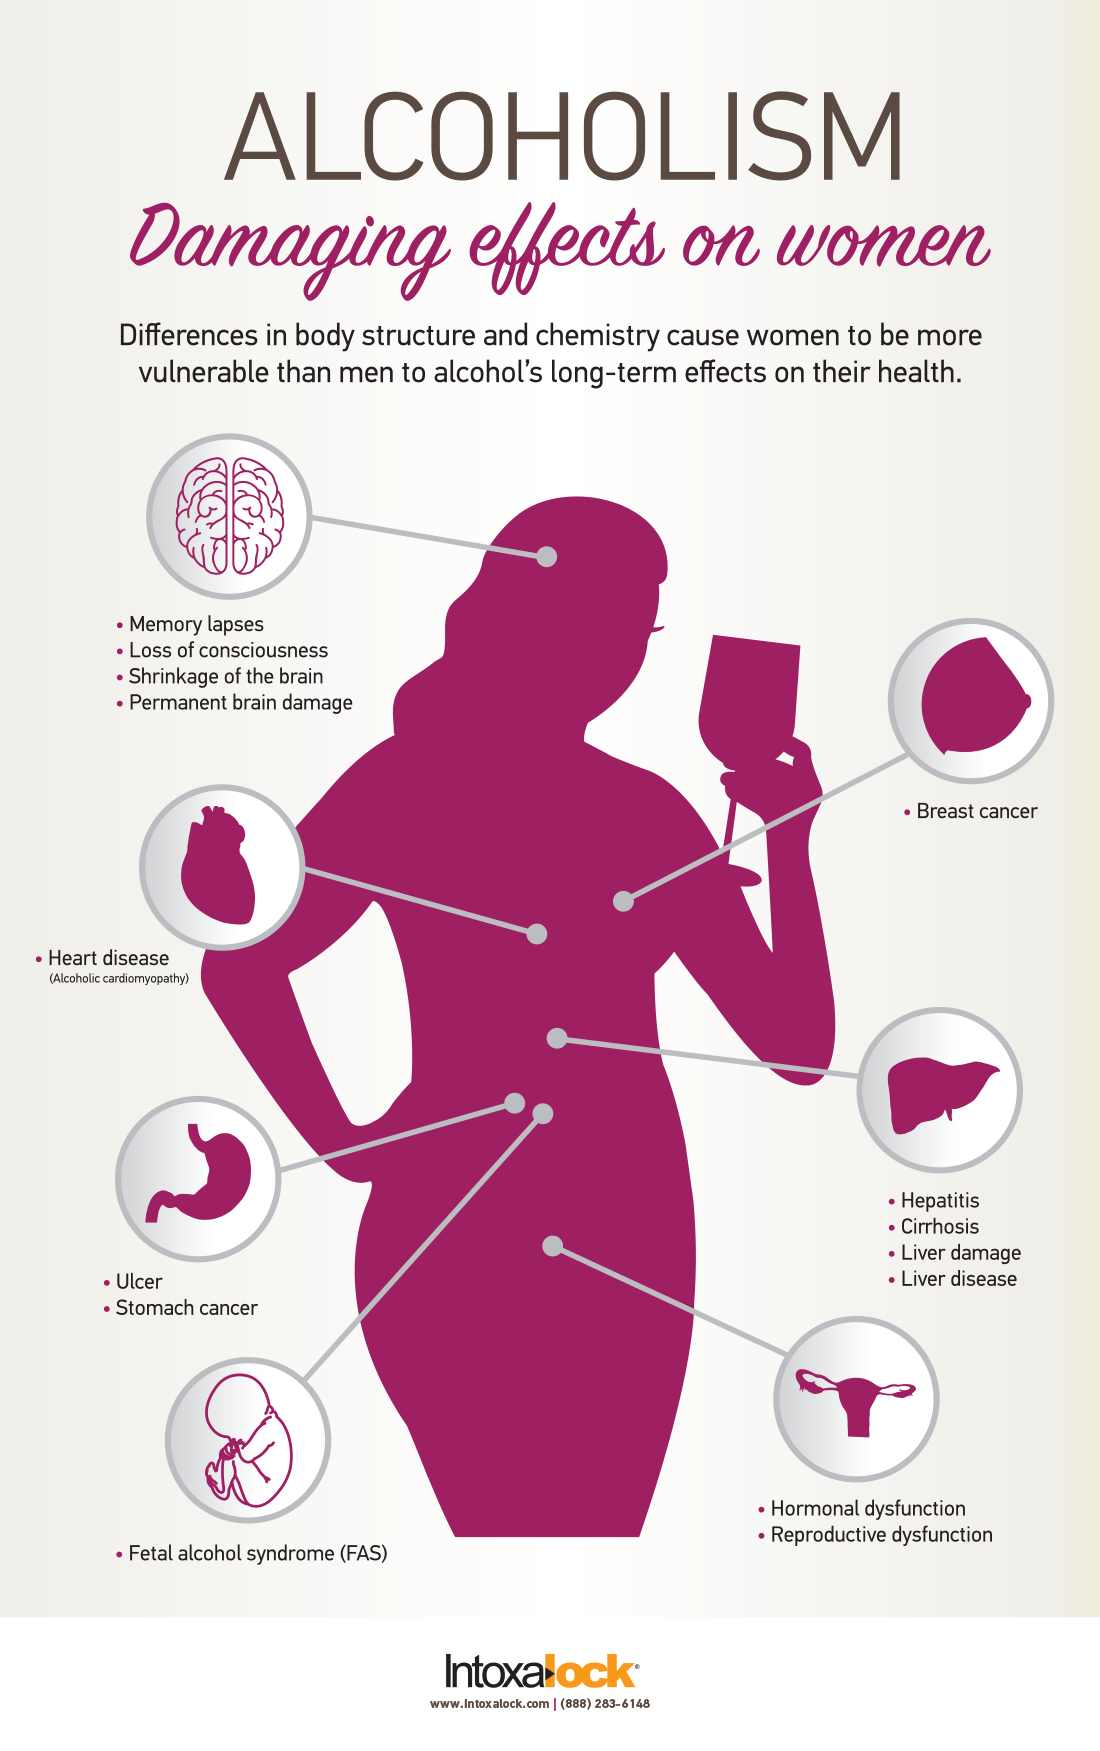 alcoholism and its effects on women Information about alcoholism in women alcoholism affects women very differently than men learn about the causes of alcoholism in women to how drinking effects.